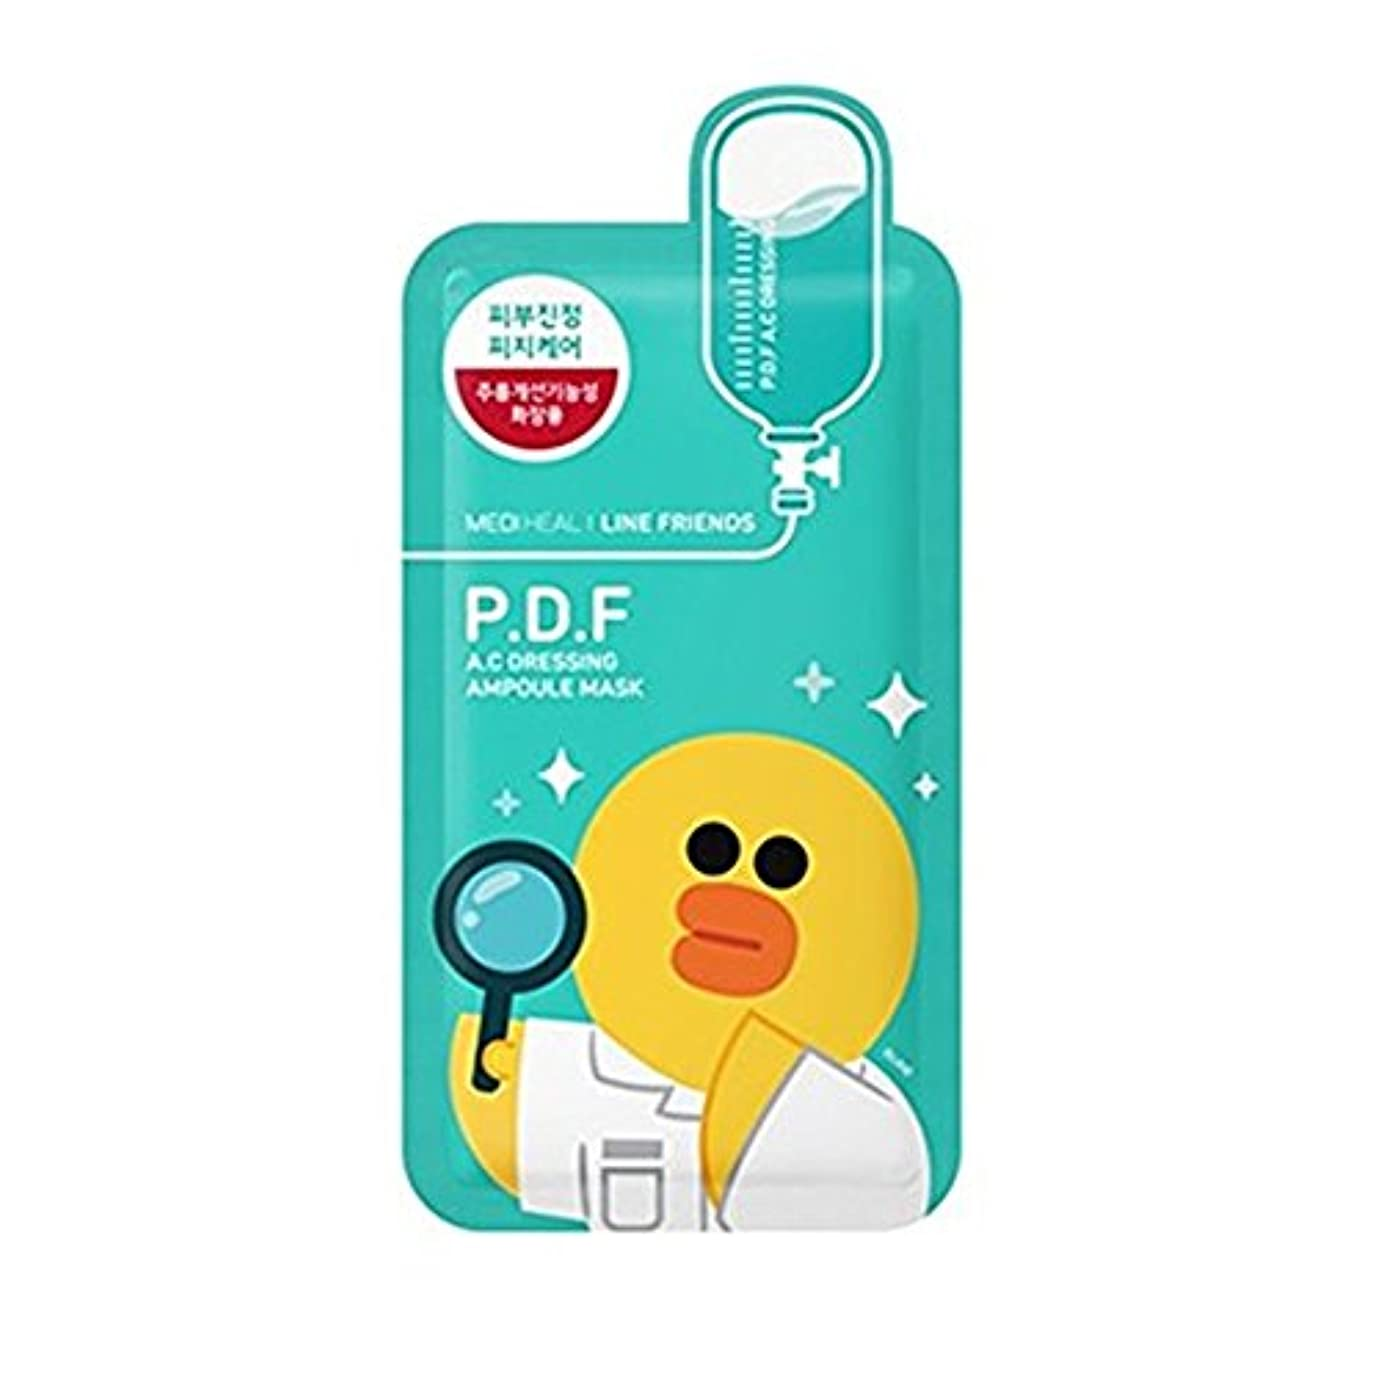 ヶ月目キャップグループ(3 Pack) MEDIHEAL Line Friends P.F.D. A.C. Dressing Ampoule Mask (並行輸入品)